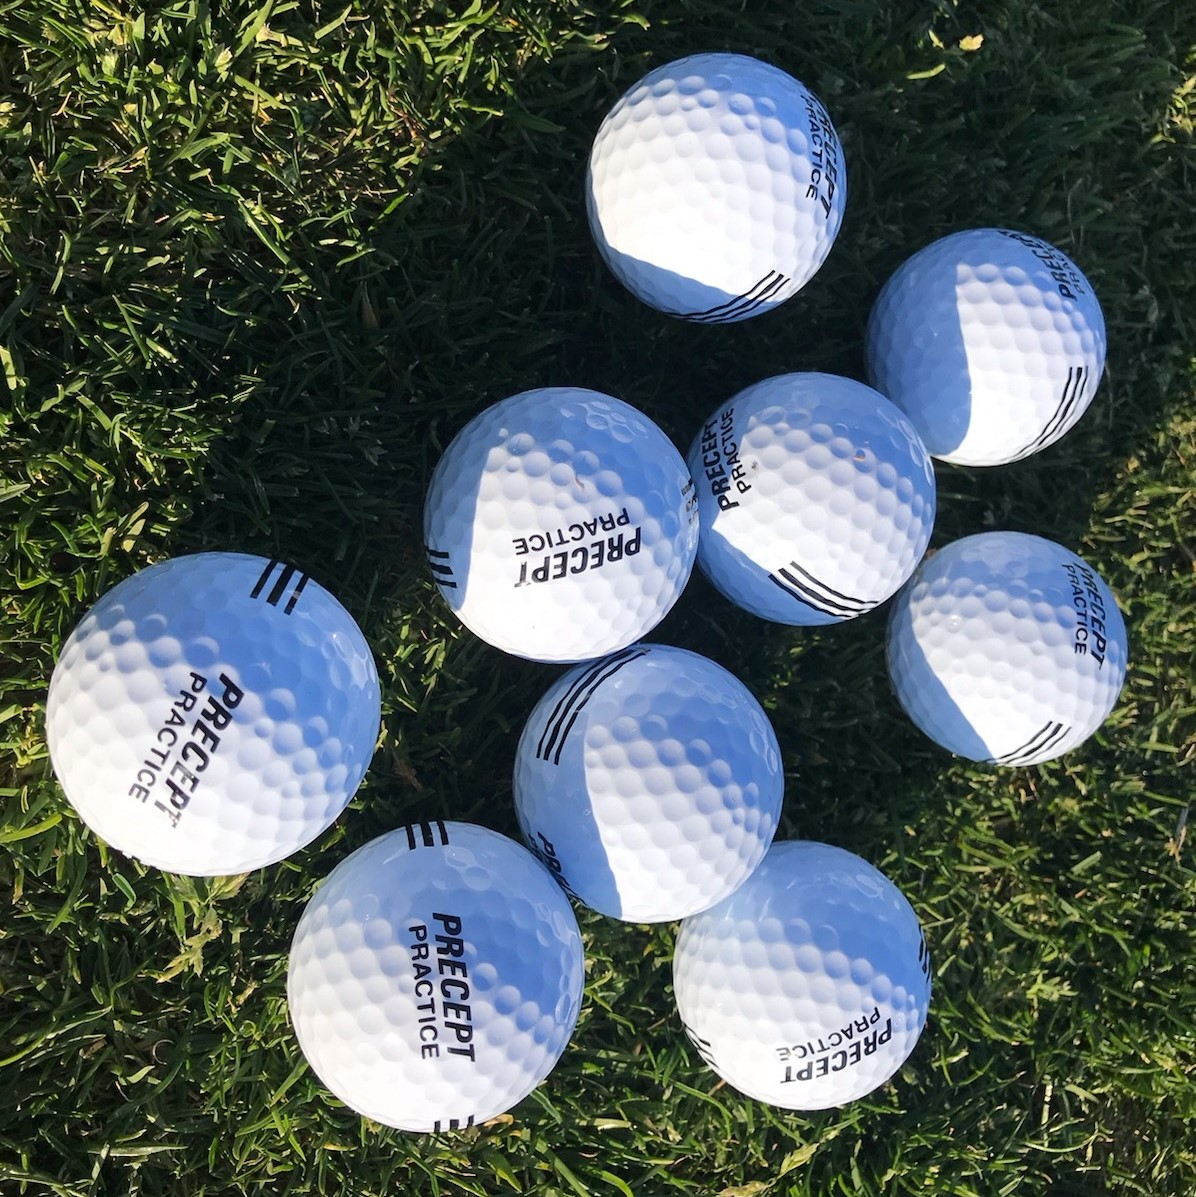 A new stock of Precept range balls have arrived and will be on the range starting this Friday, February 21st. Come hit a bucket of balls at Dragonfly!  #californiagolf #golfpracticepic.twitter.com/1yhJOvVoFU